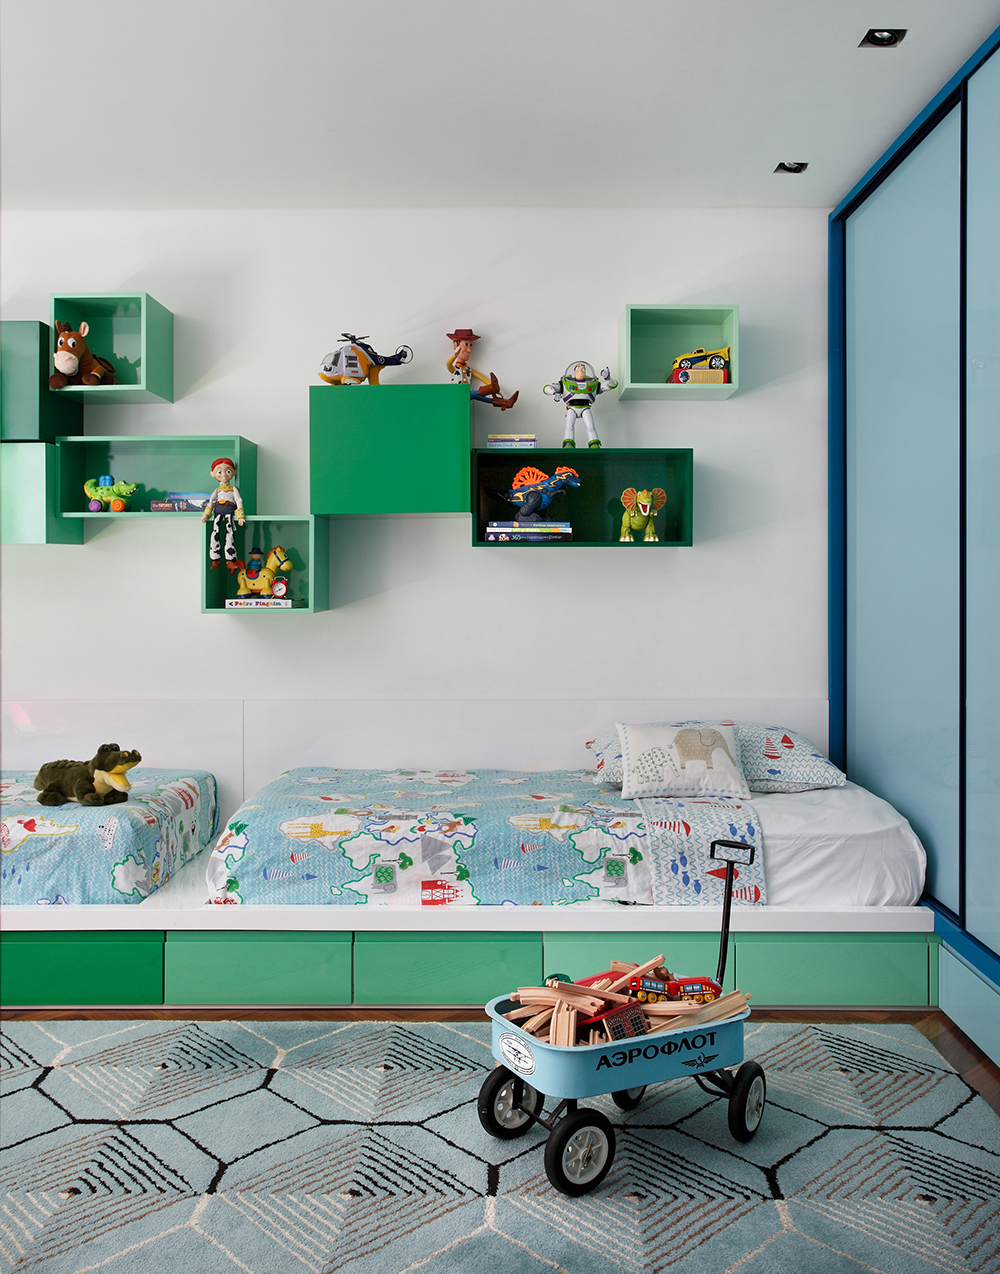 Kids-Interior-Design-Children-Spaces-Playroom-Ideas-100.jpg